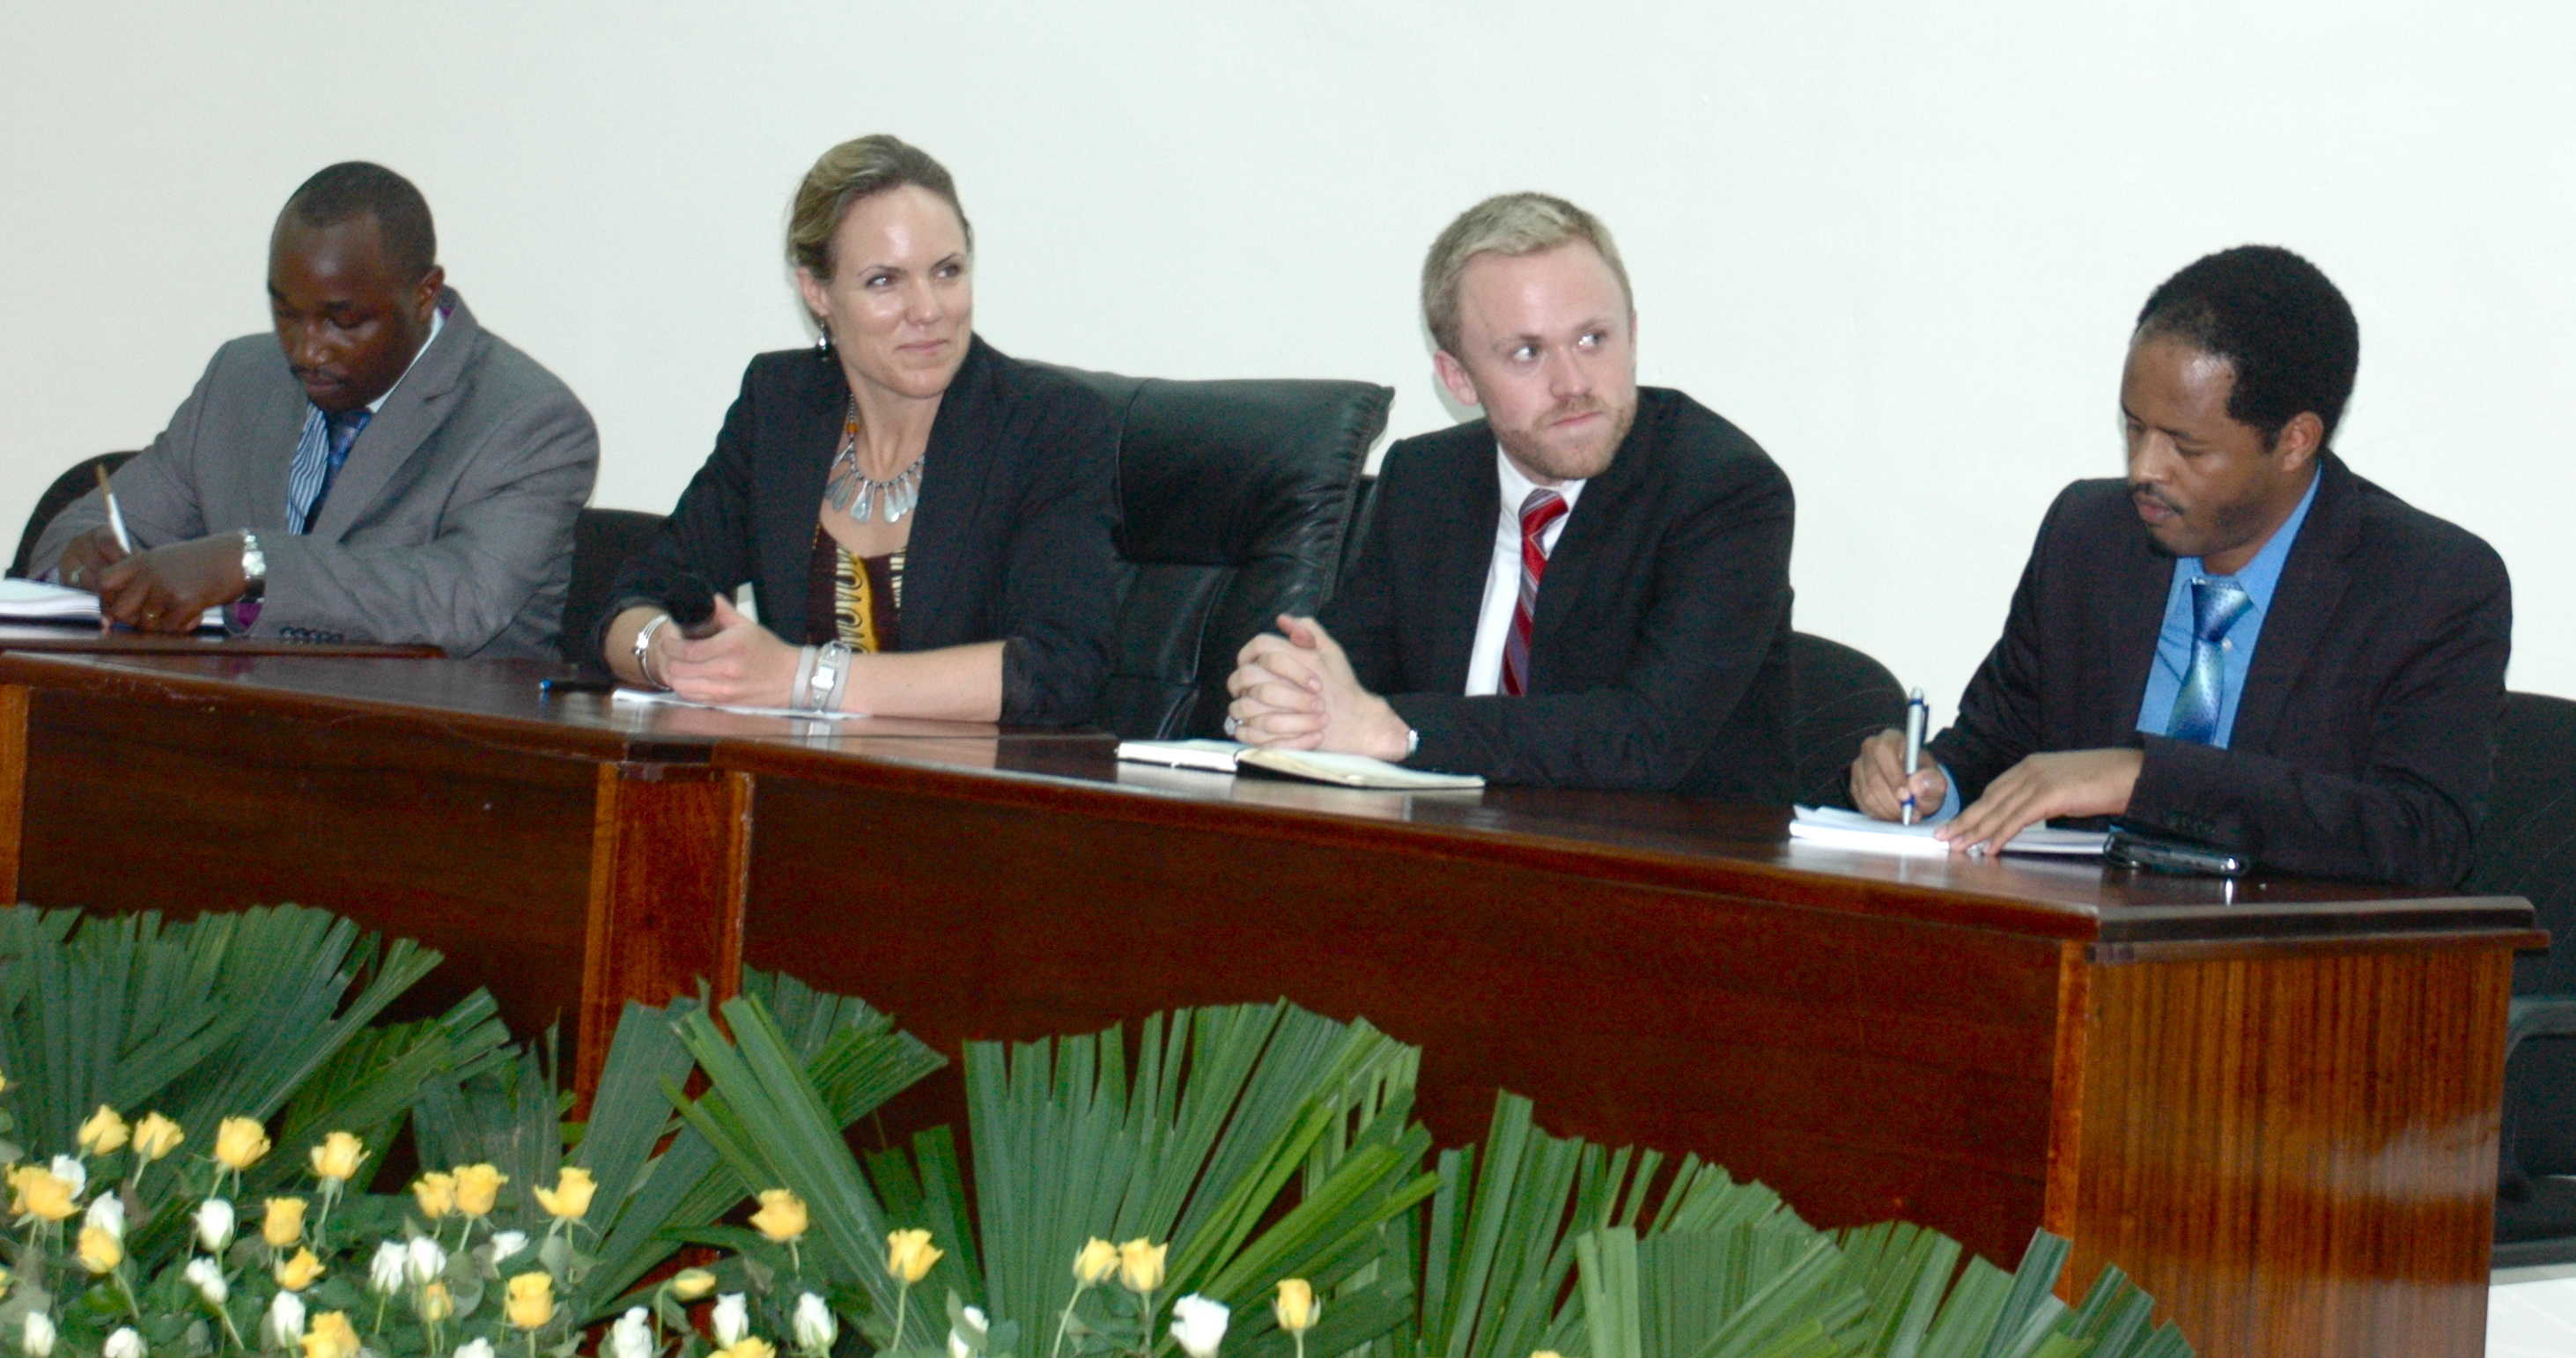 From left to right: Ministry of Education Director General for Science, Technology and Research Remy Twiringiyimana, GKI Chief Operating Officer Sara Farley, GKI Program Officer Andrew Gerard, and Rwanda National Science and Technology Commission Analyst Felly Kalisa speaking at May 2 workshop